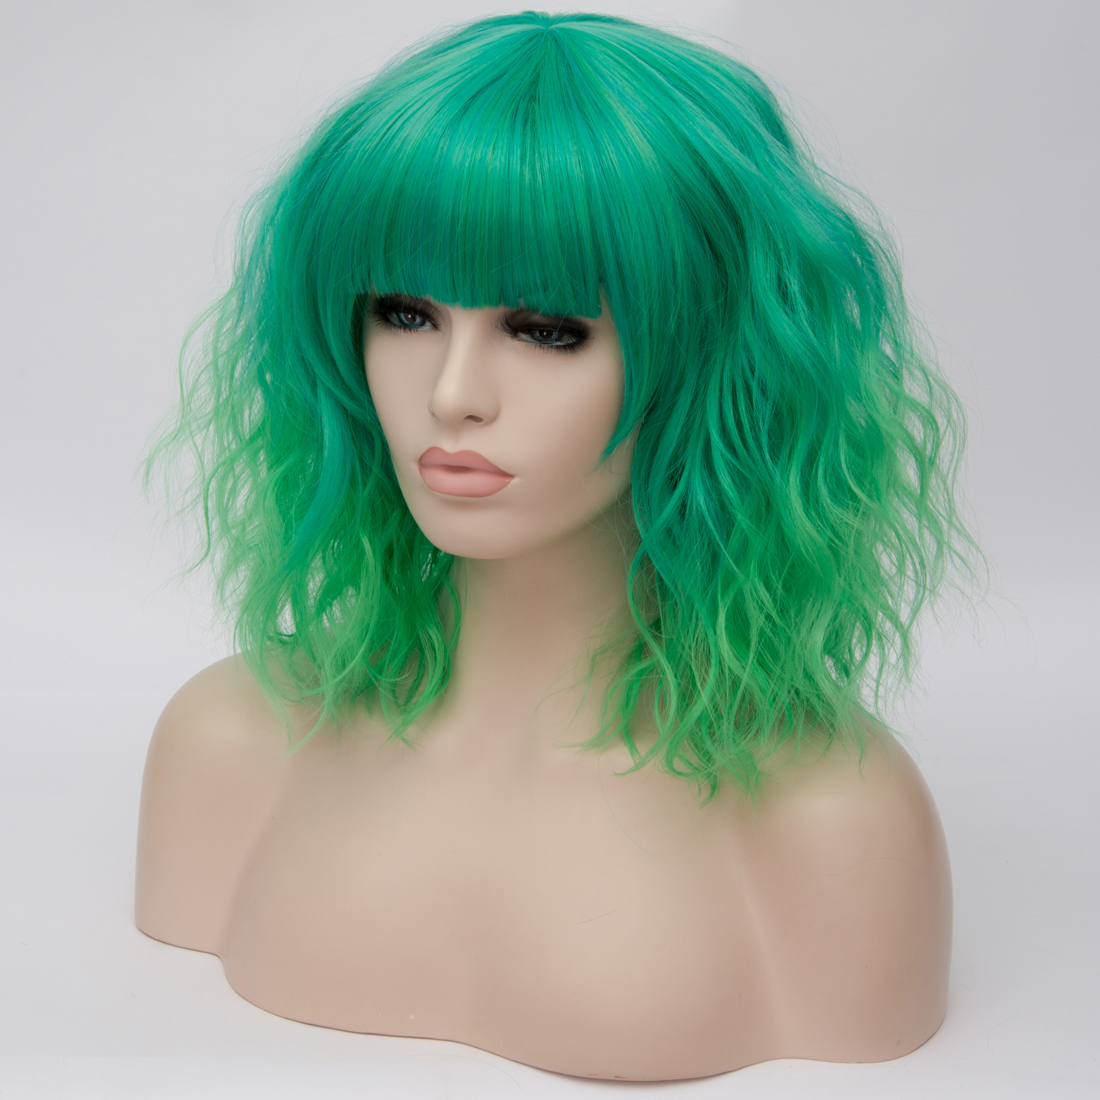 H5e0958f68cee452184f17faf5064f65f6 - Similler Short Synthetic Wig for Women Cosplay Curly Hair Heat Resistance Ombre Color Blue Purple Pink Green Orange Two Tones